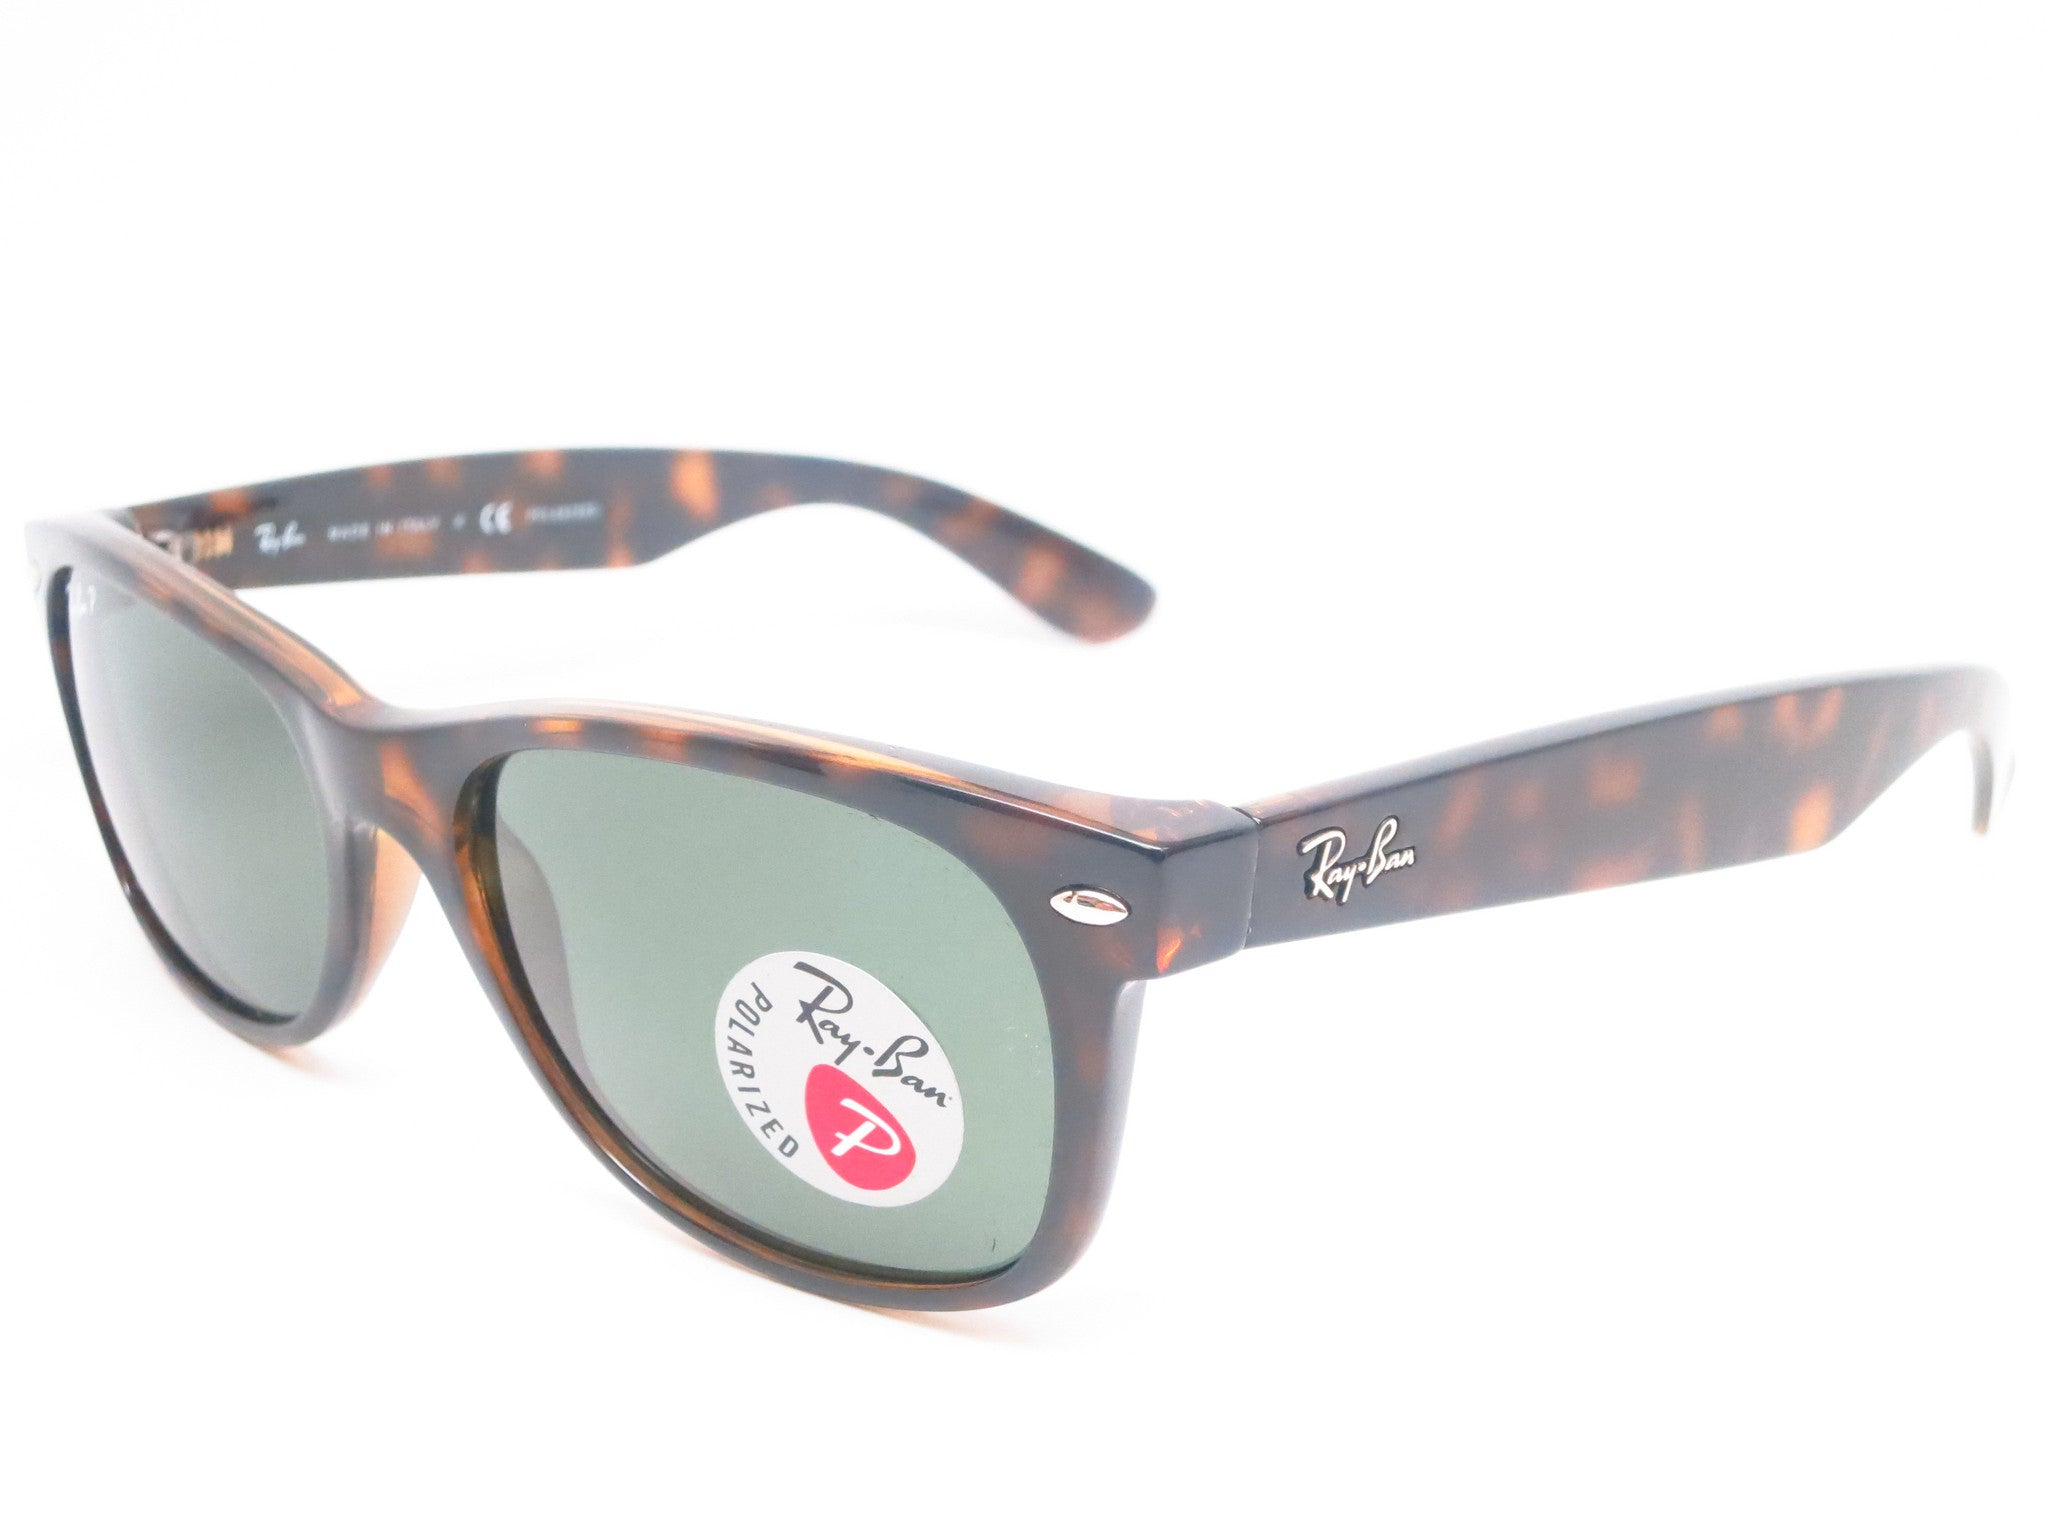 994a49f3a9 Ray-Ban RB 2132 New Wayfarer 902 58 Tortoise Polarized Sunglasses - Eye  Heart ...